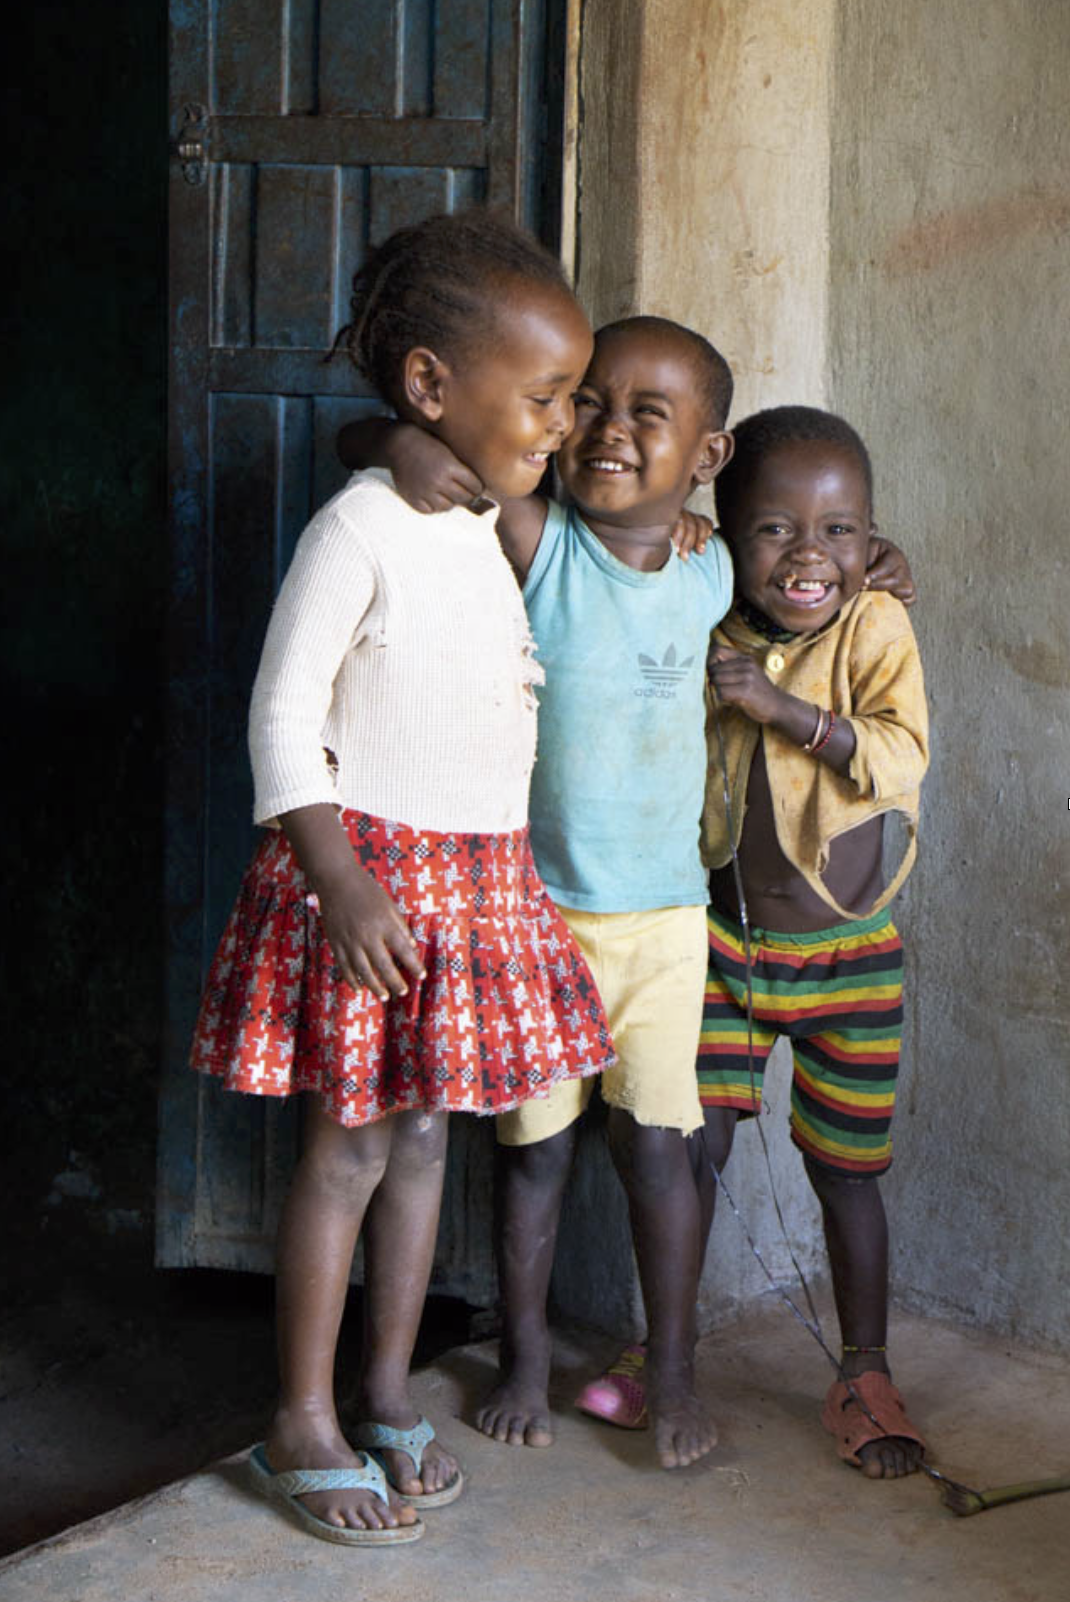 I photographed these three adorable children after hanging out at a local restaurant in Jinka, Ethiopia. I just sat and smiled and watched them play with each other and then eventually we had a game of hide-and-seek developing. Then after we developed this great connection, I took out my camera and began to photography. The photos come alive this way, too. There is a relationship that we all have that we did not when I first walked up to the establishment.